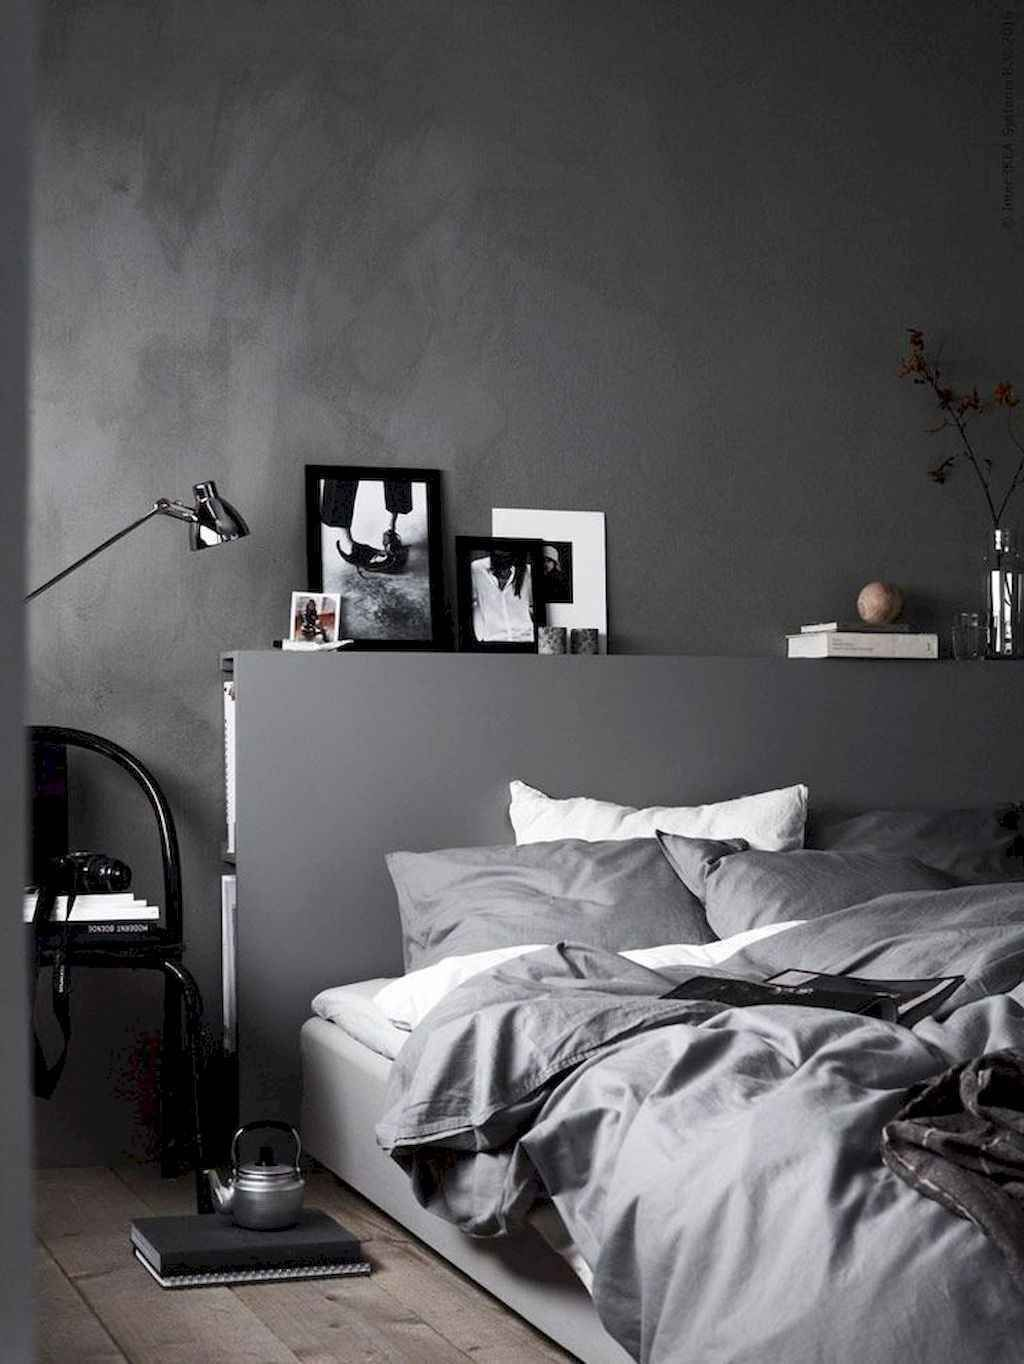 Adorable 75 Modern Minimalist Bedroom Design Ideas source